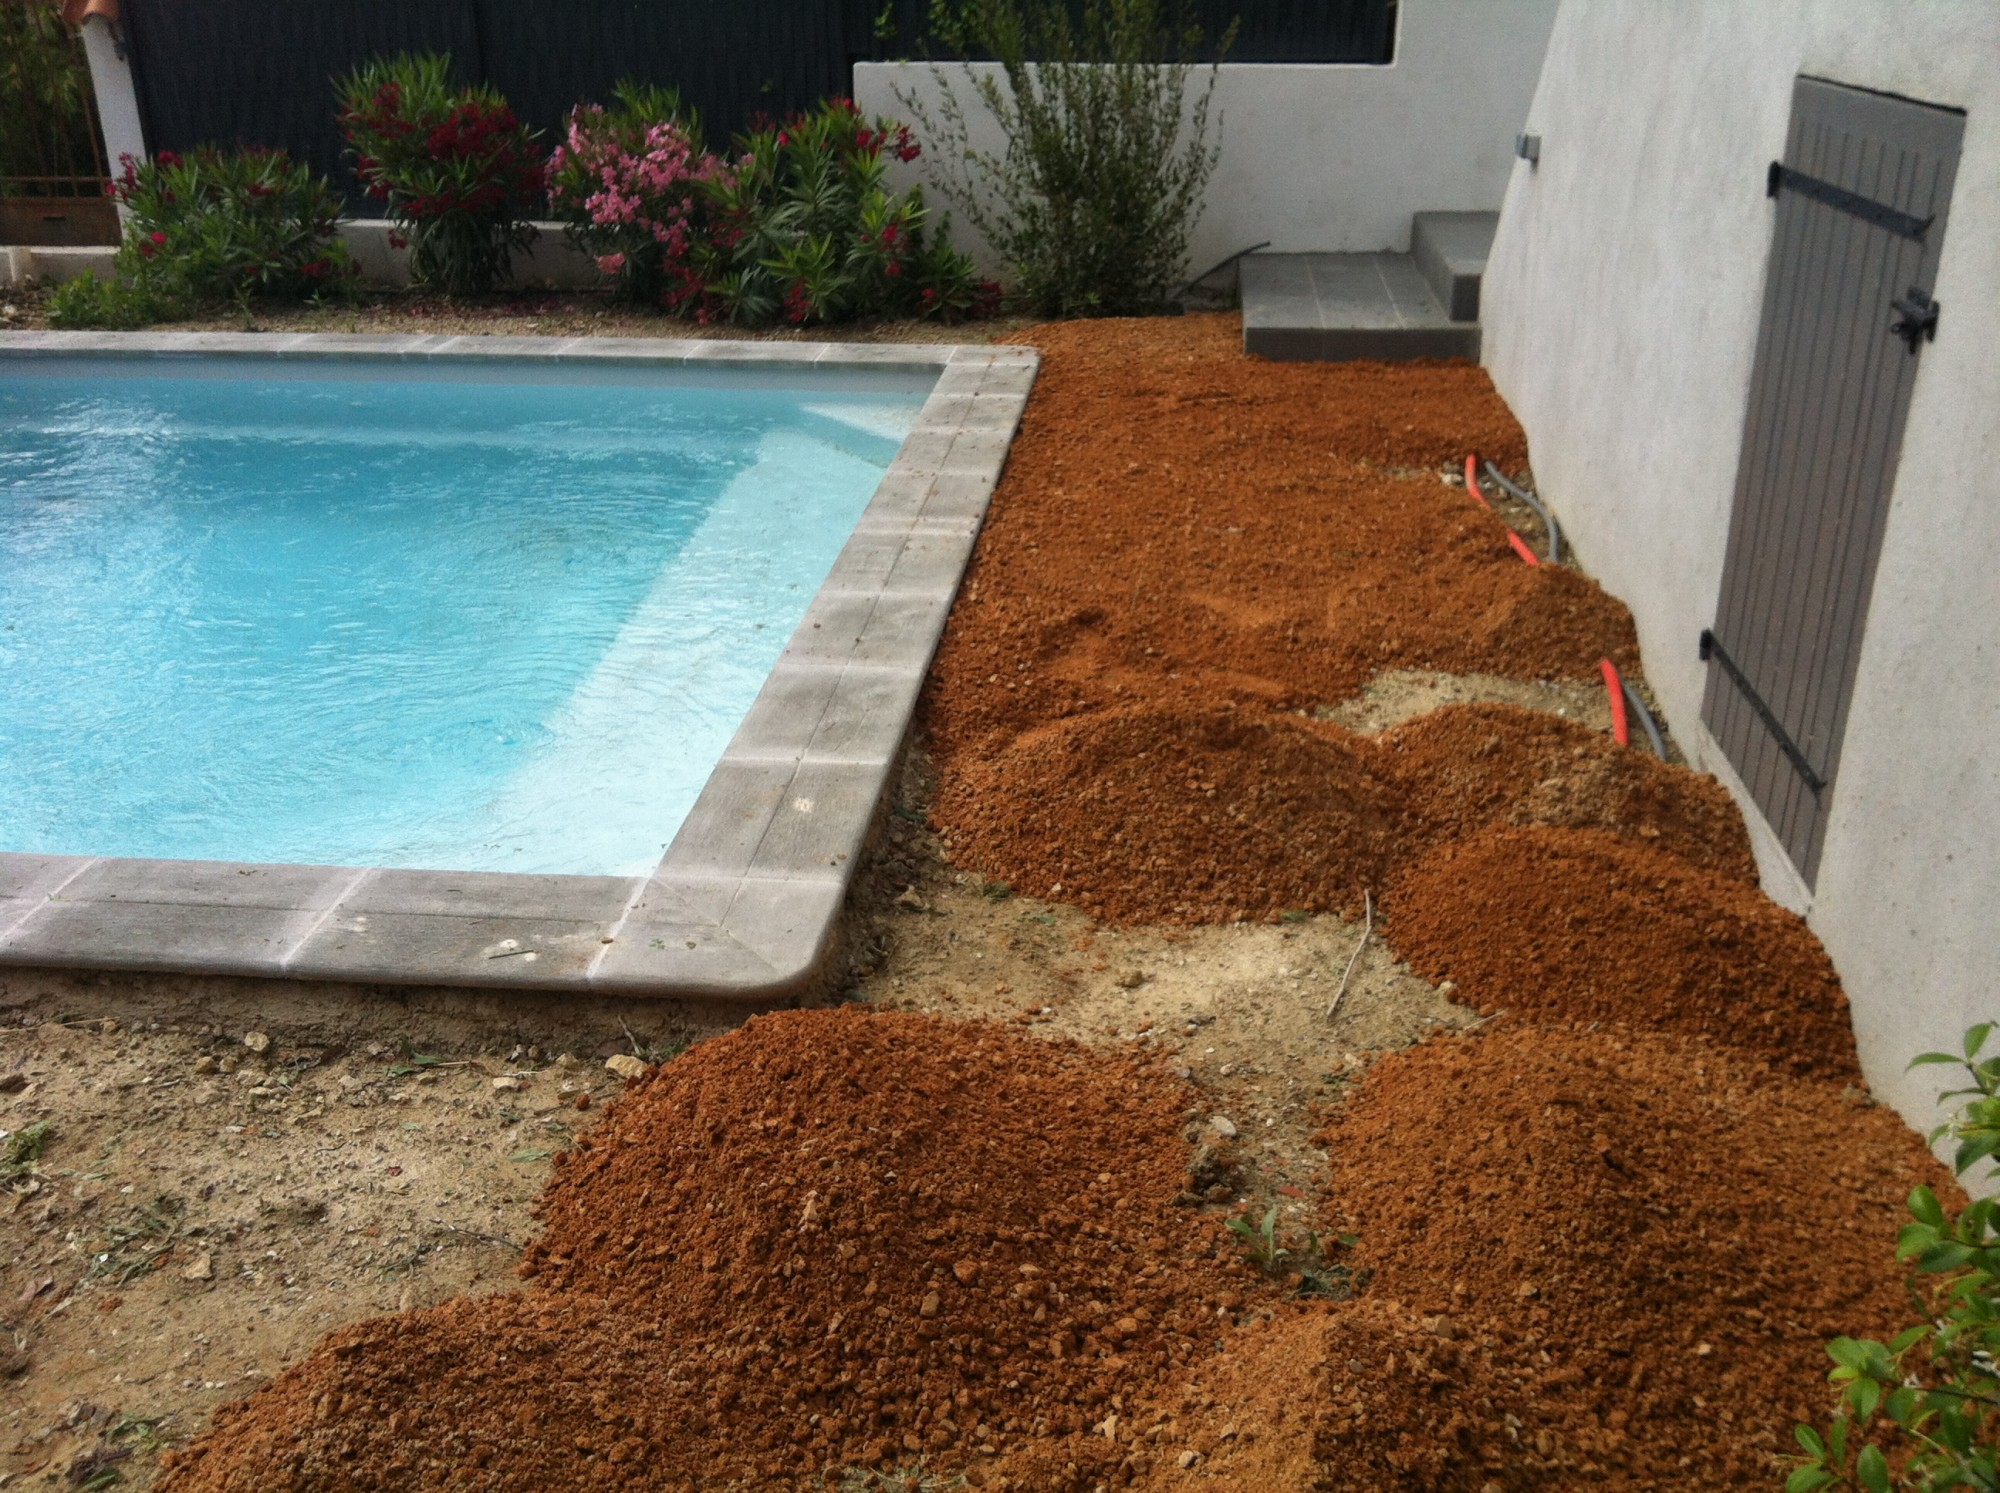 Pose de gazon artificiel pour piscine aix en provence la - Pose de gazon synthetique ...